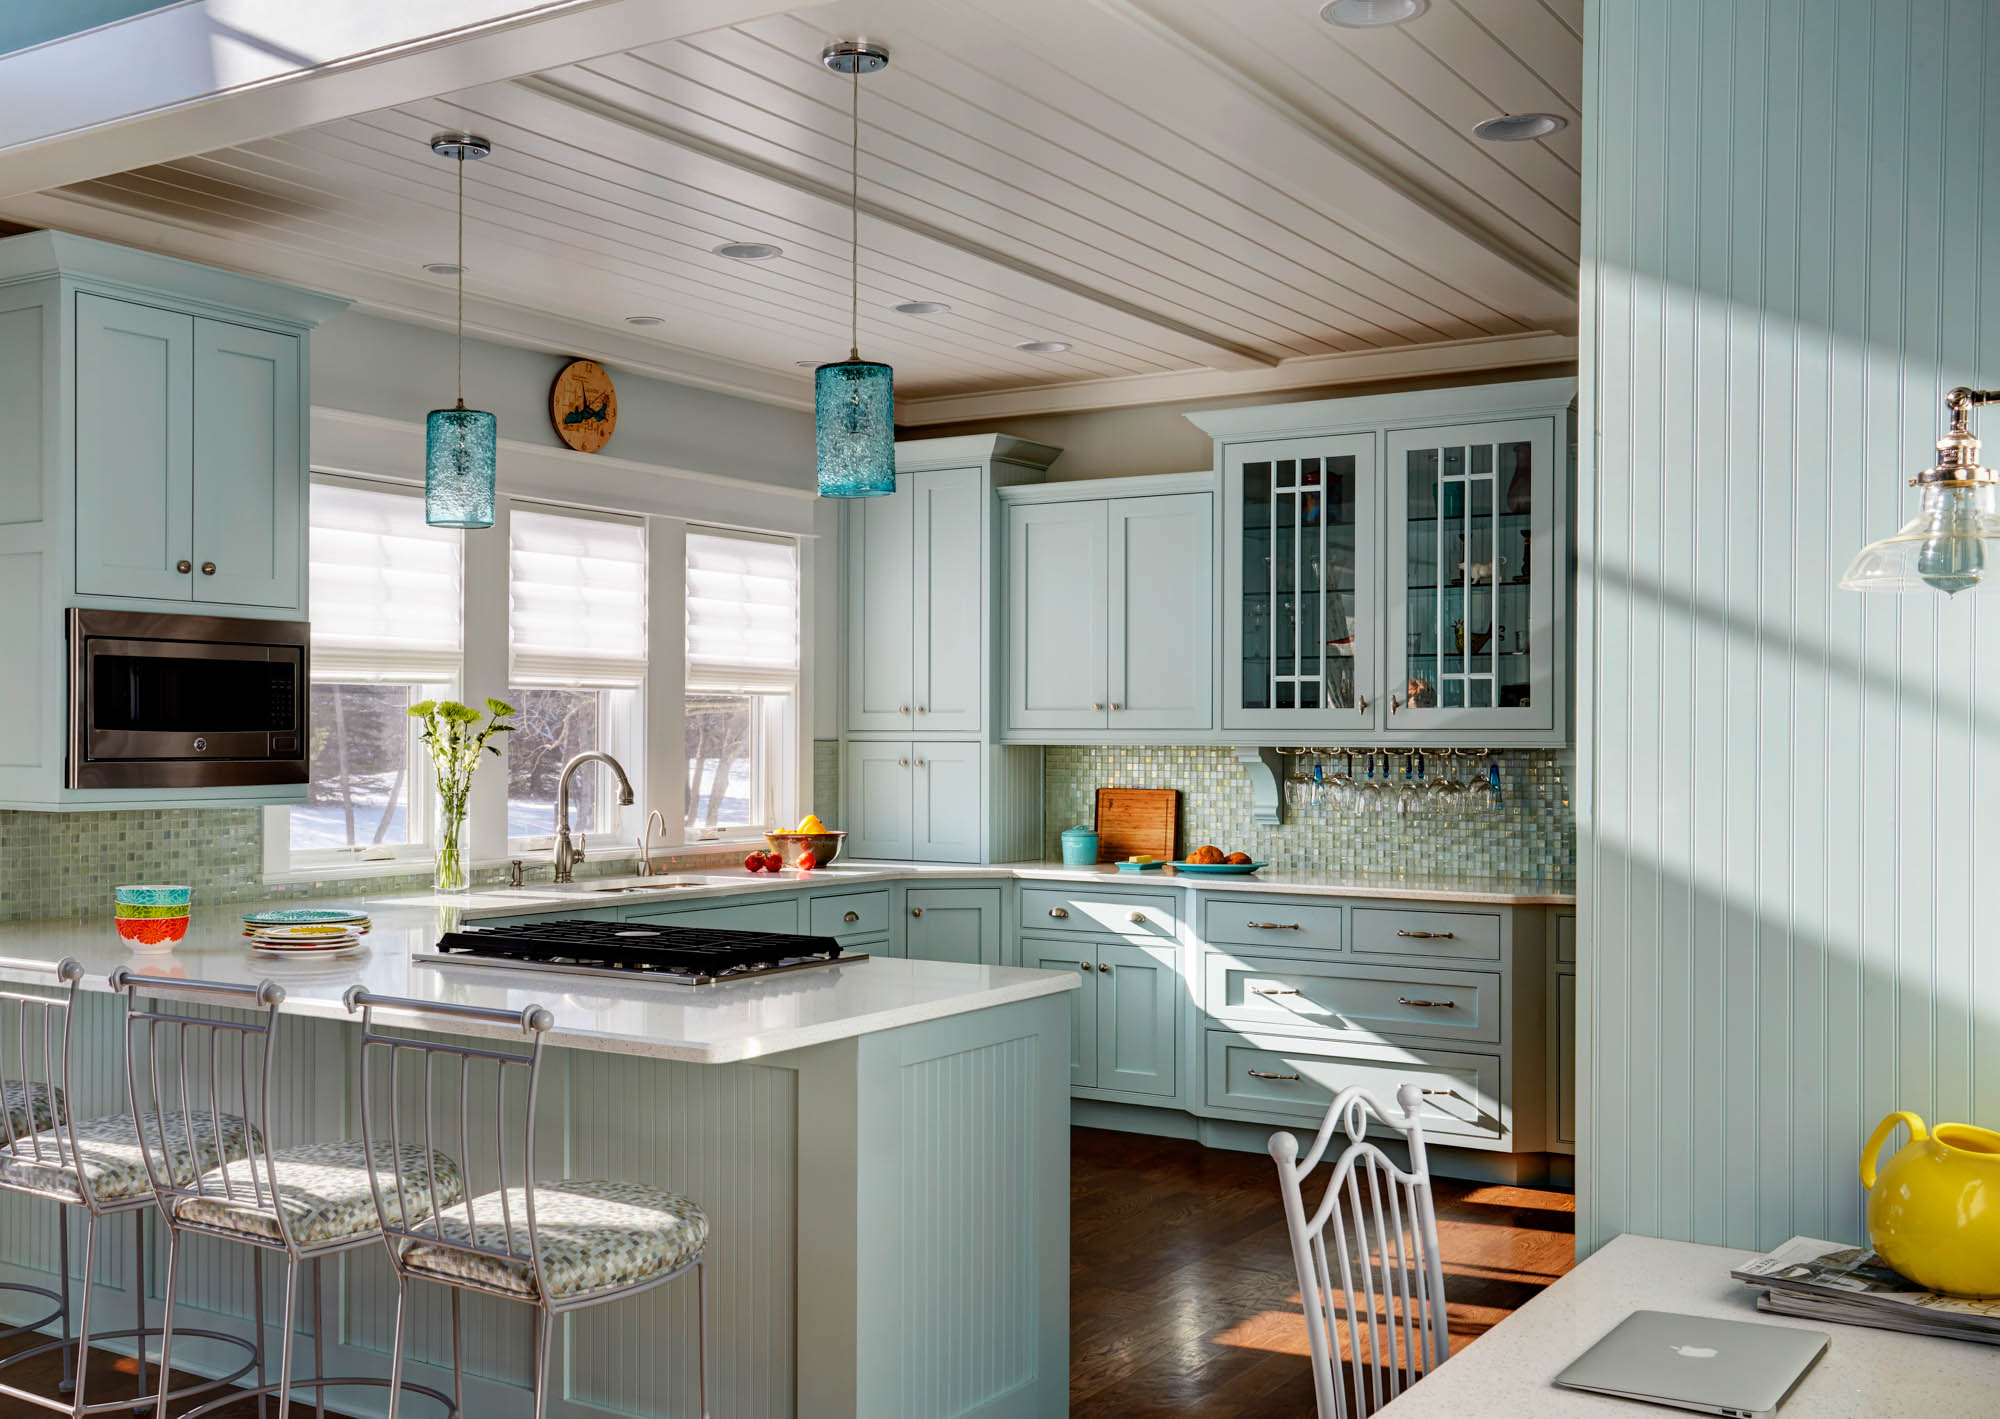 View this custom color painted kitchen | Showplace Cabinetry